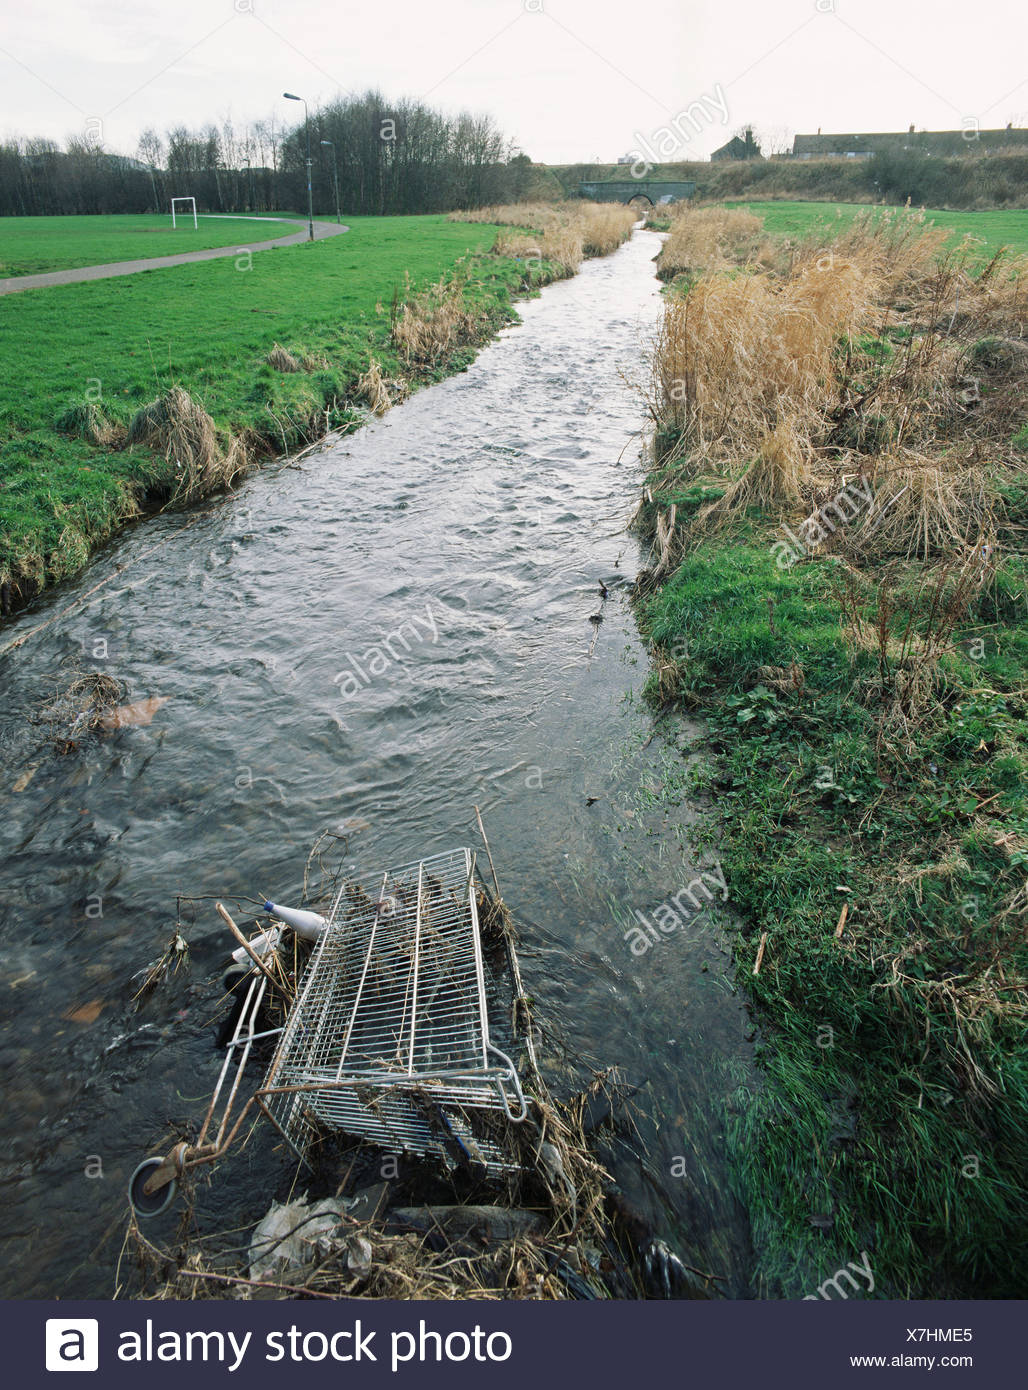 Shopping trolley in a stream Stock Photo